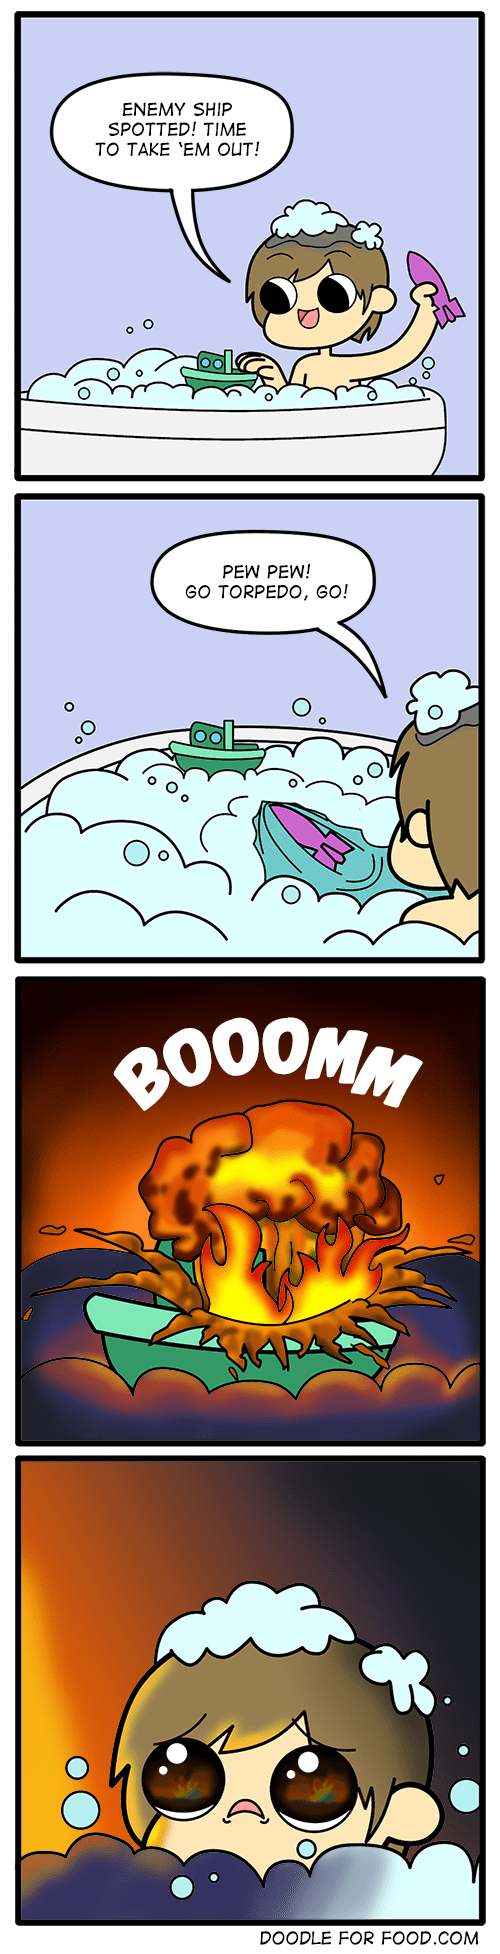 web comics war bath Torpedoes Aren't Fun For Anyone